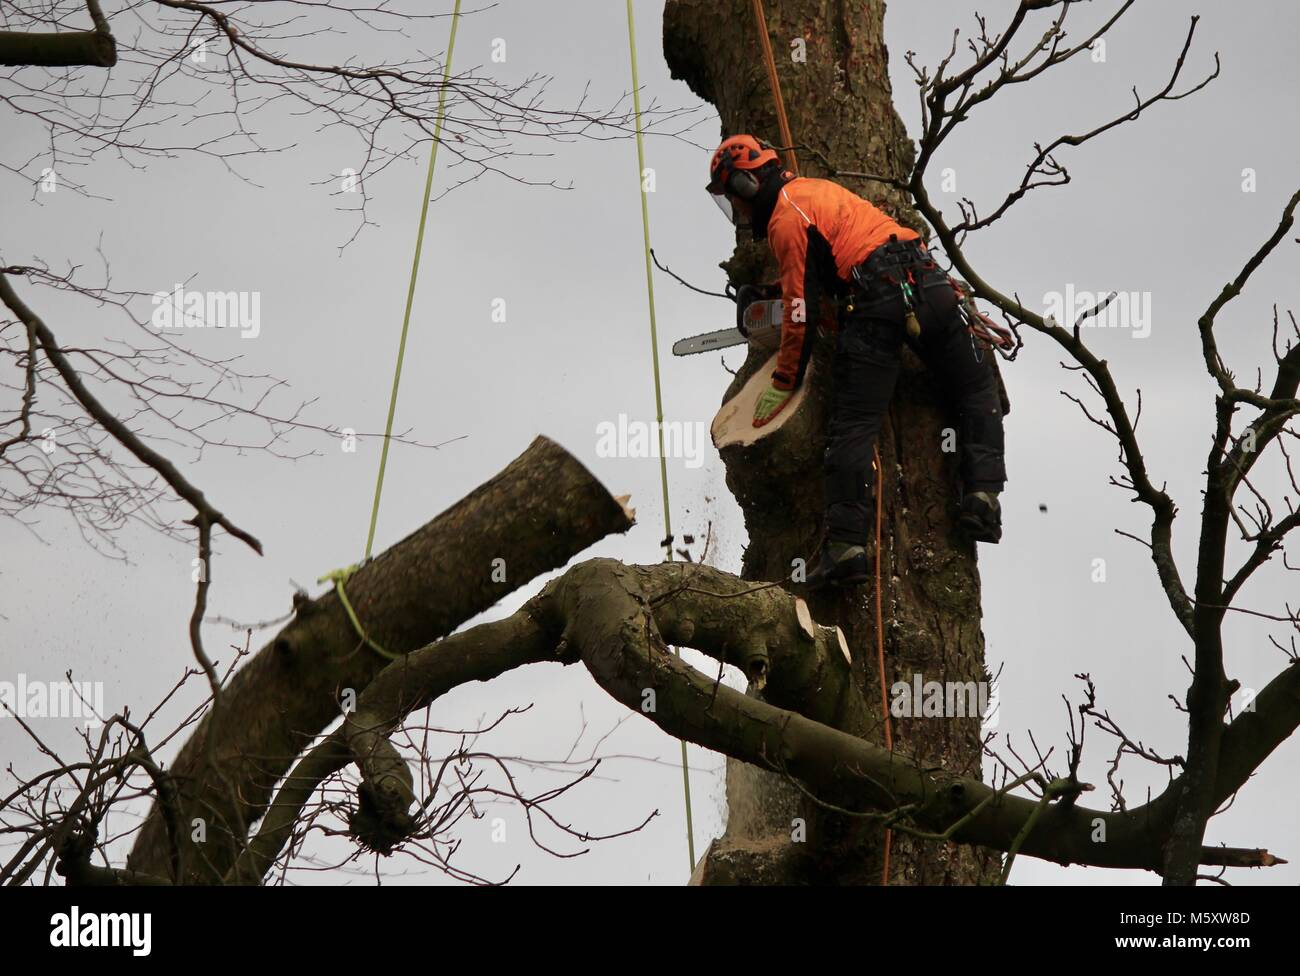 Tree surgeon operating his chainsaw in a tree attached to ropes sawing off large branches Stock Photo